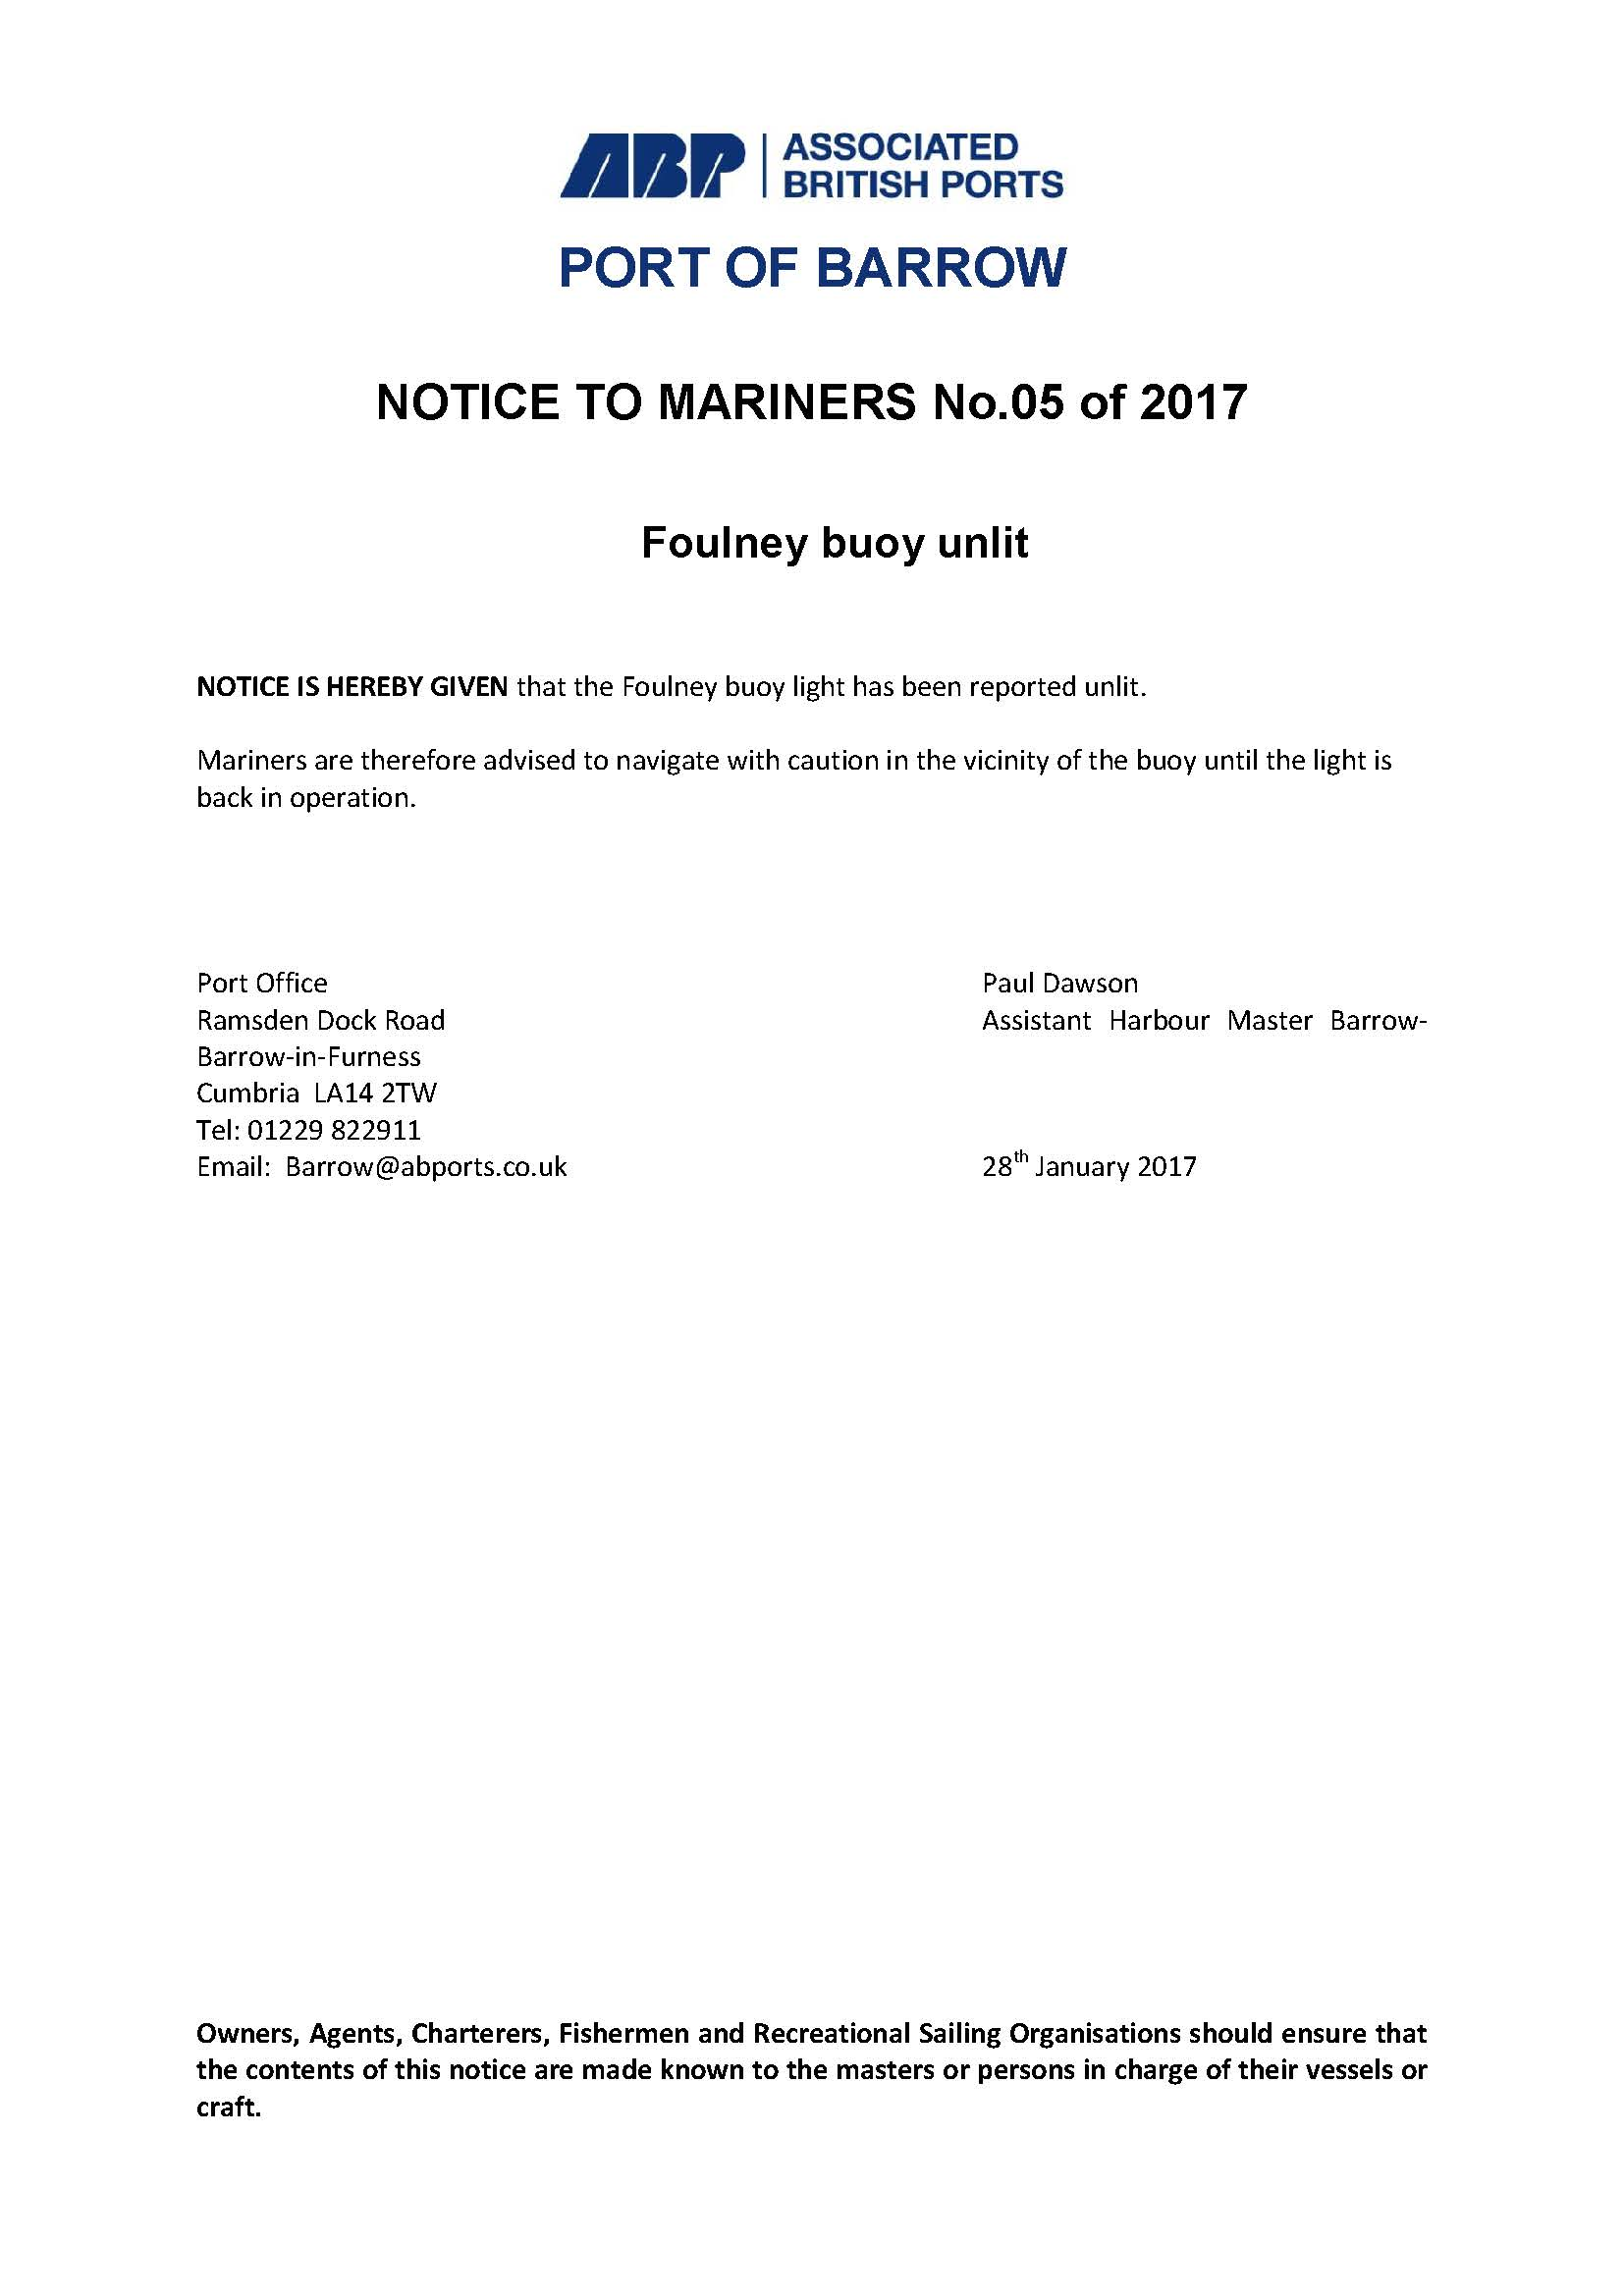 Notice to Mariners 5